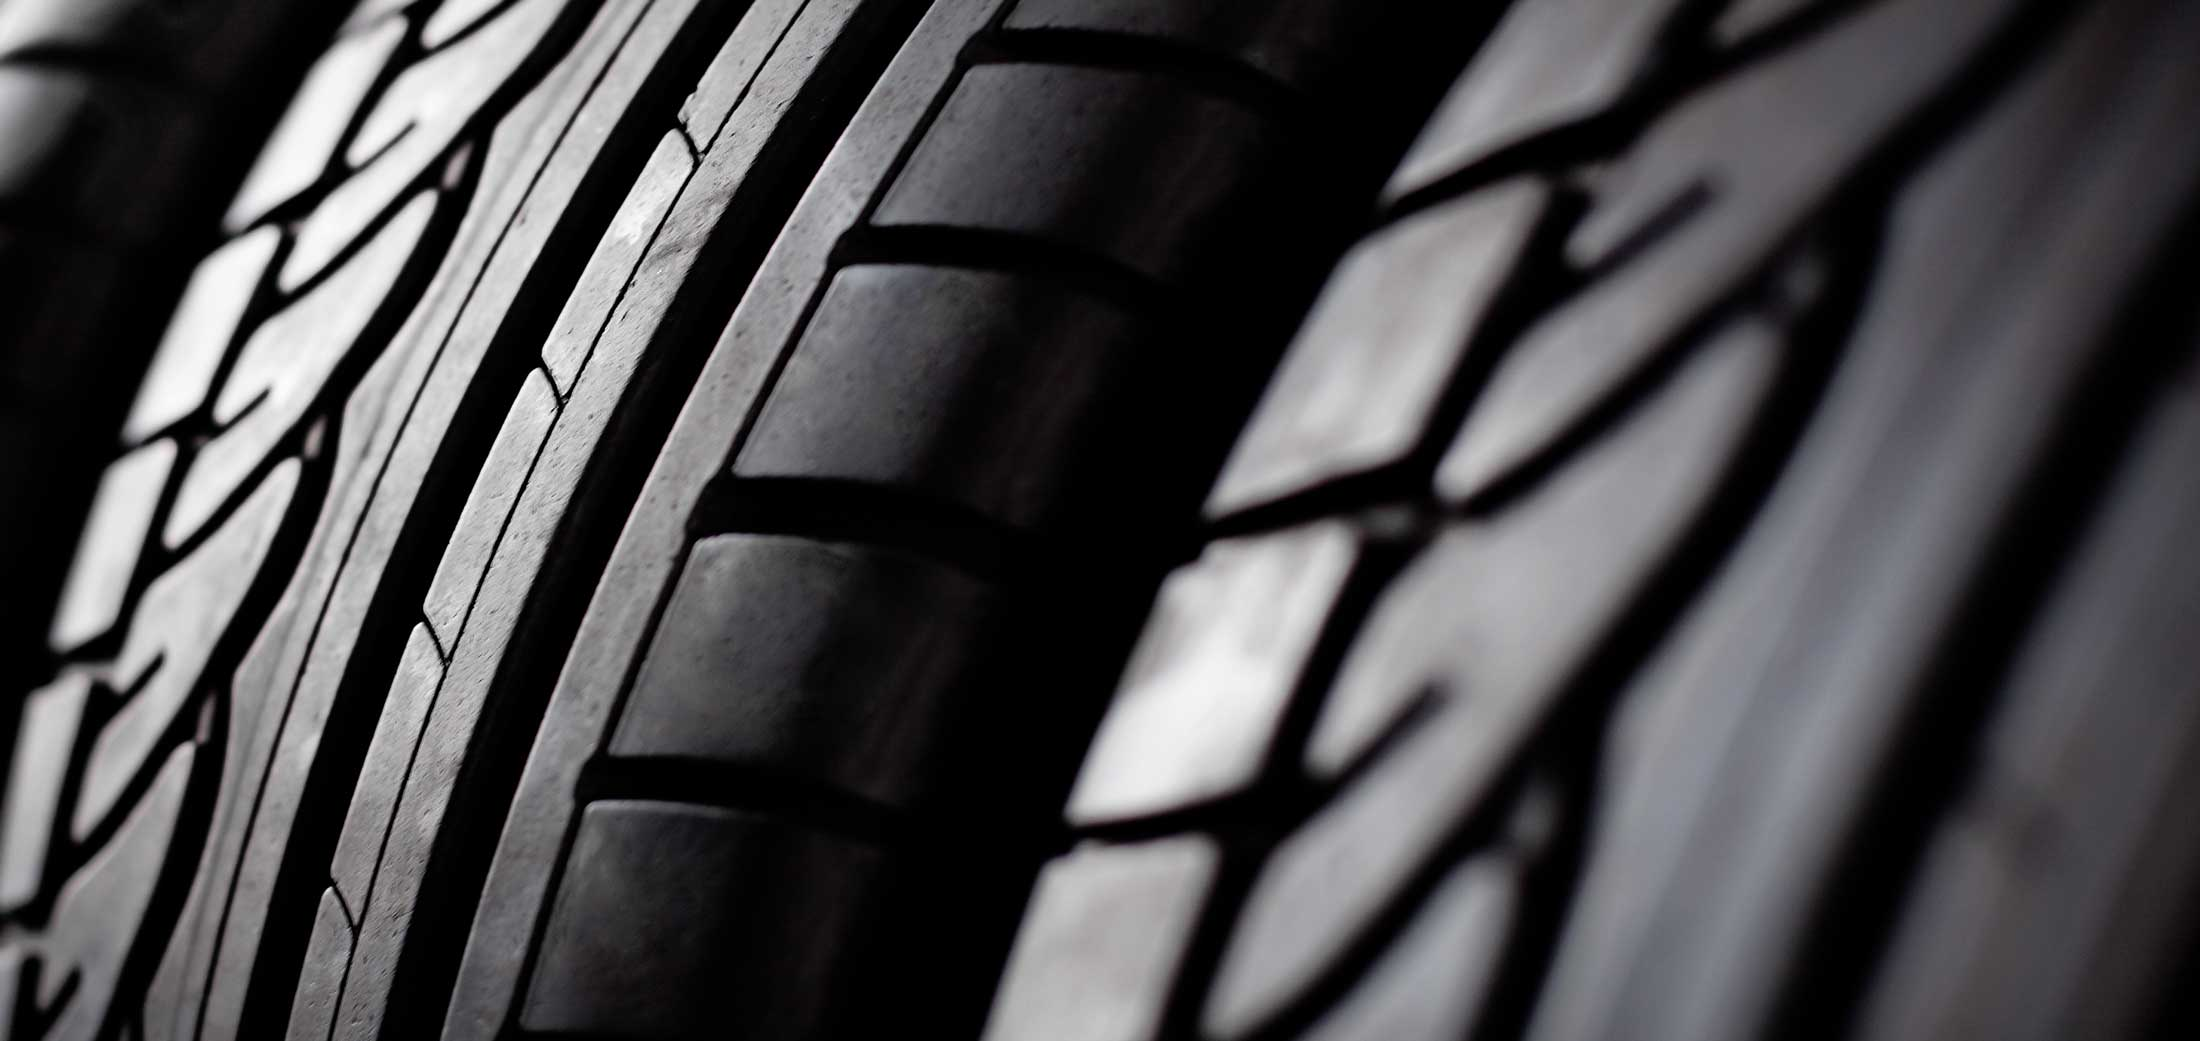 tires_banner